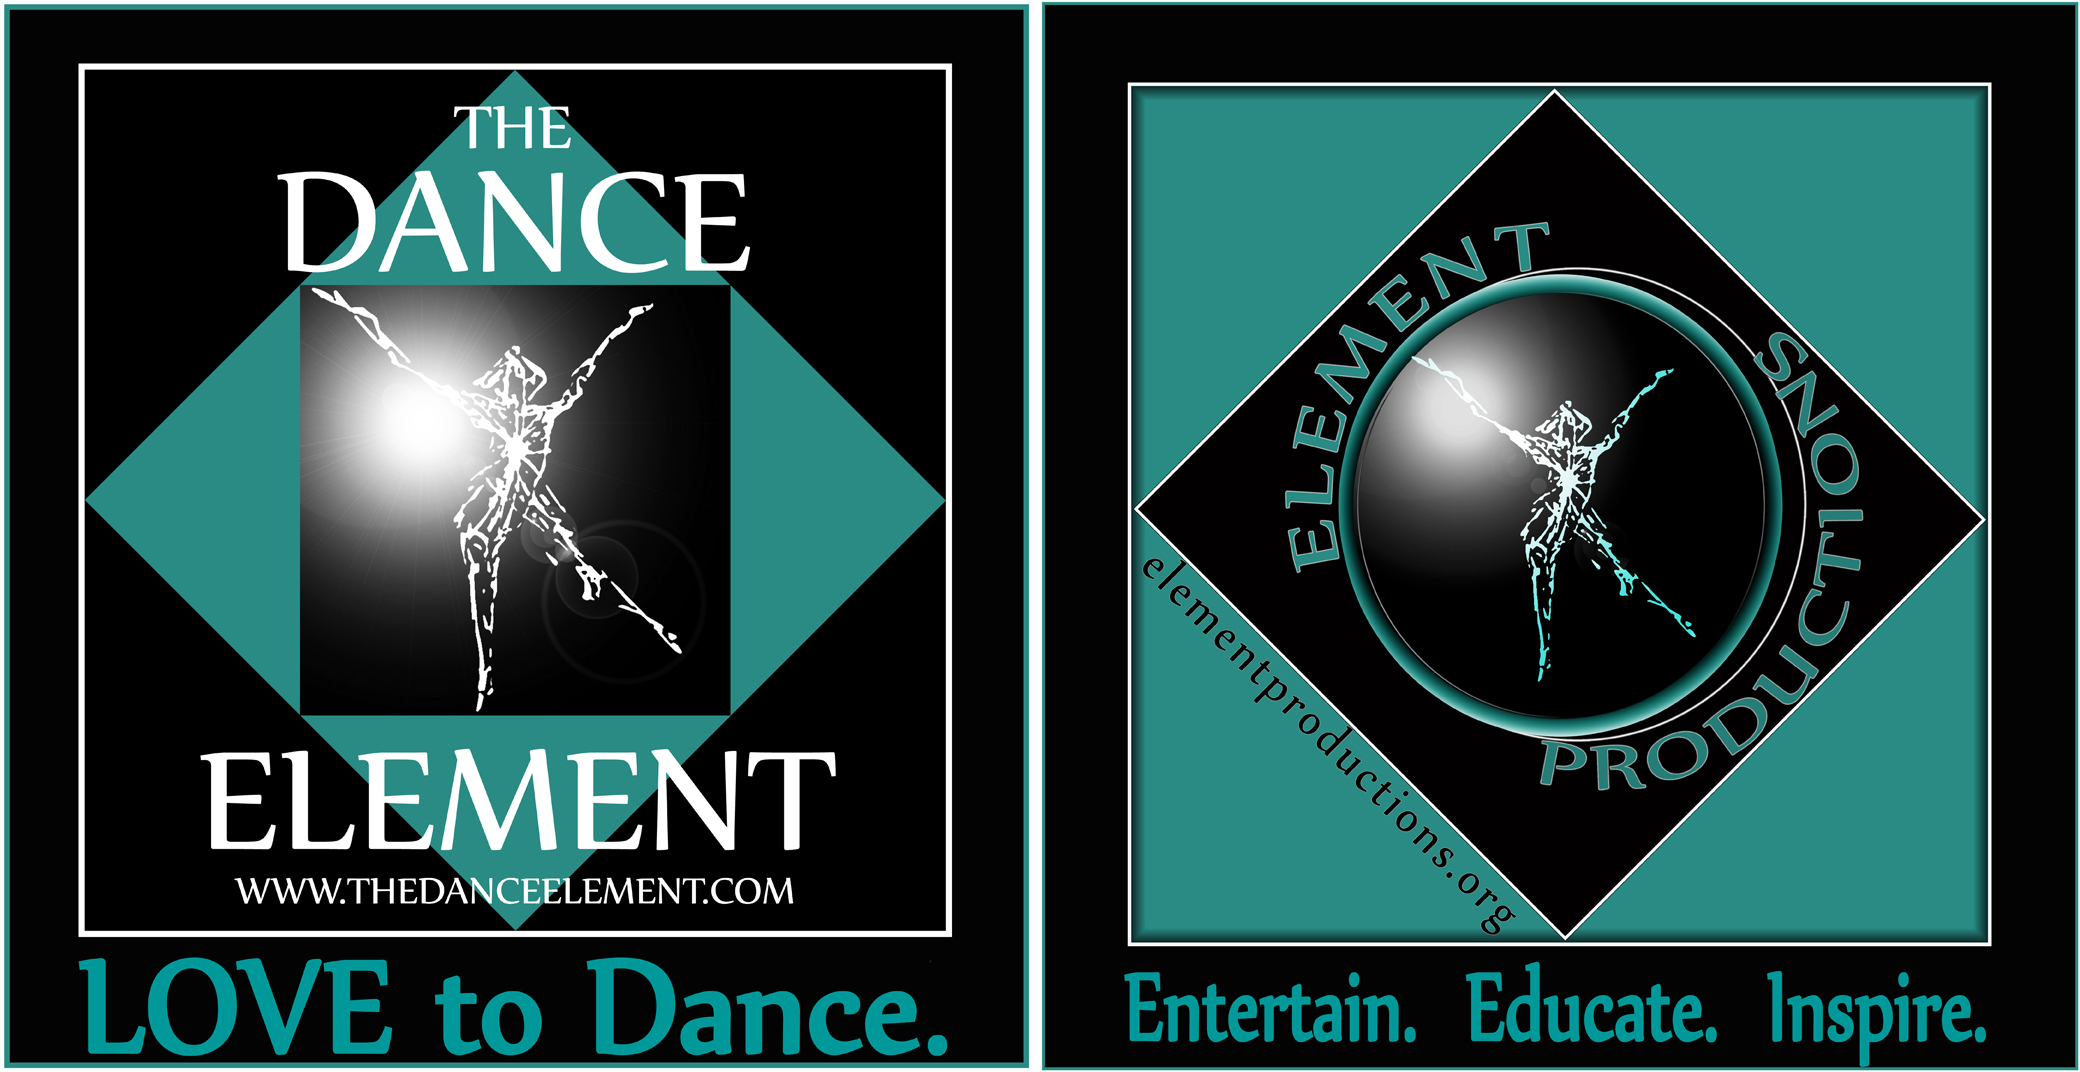 The Dance Element & Element Productions provide dance classes in Wilmington NC